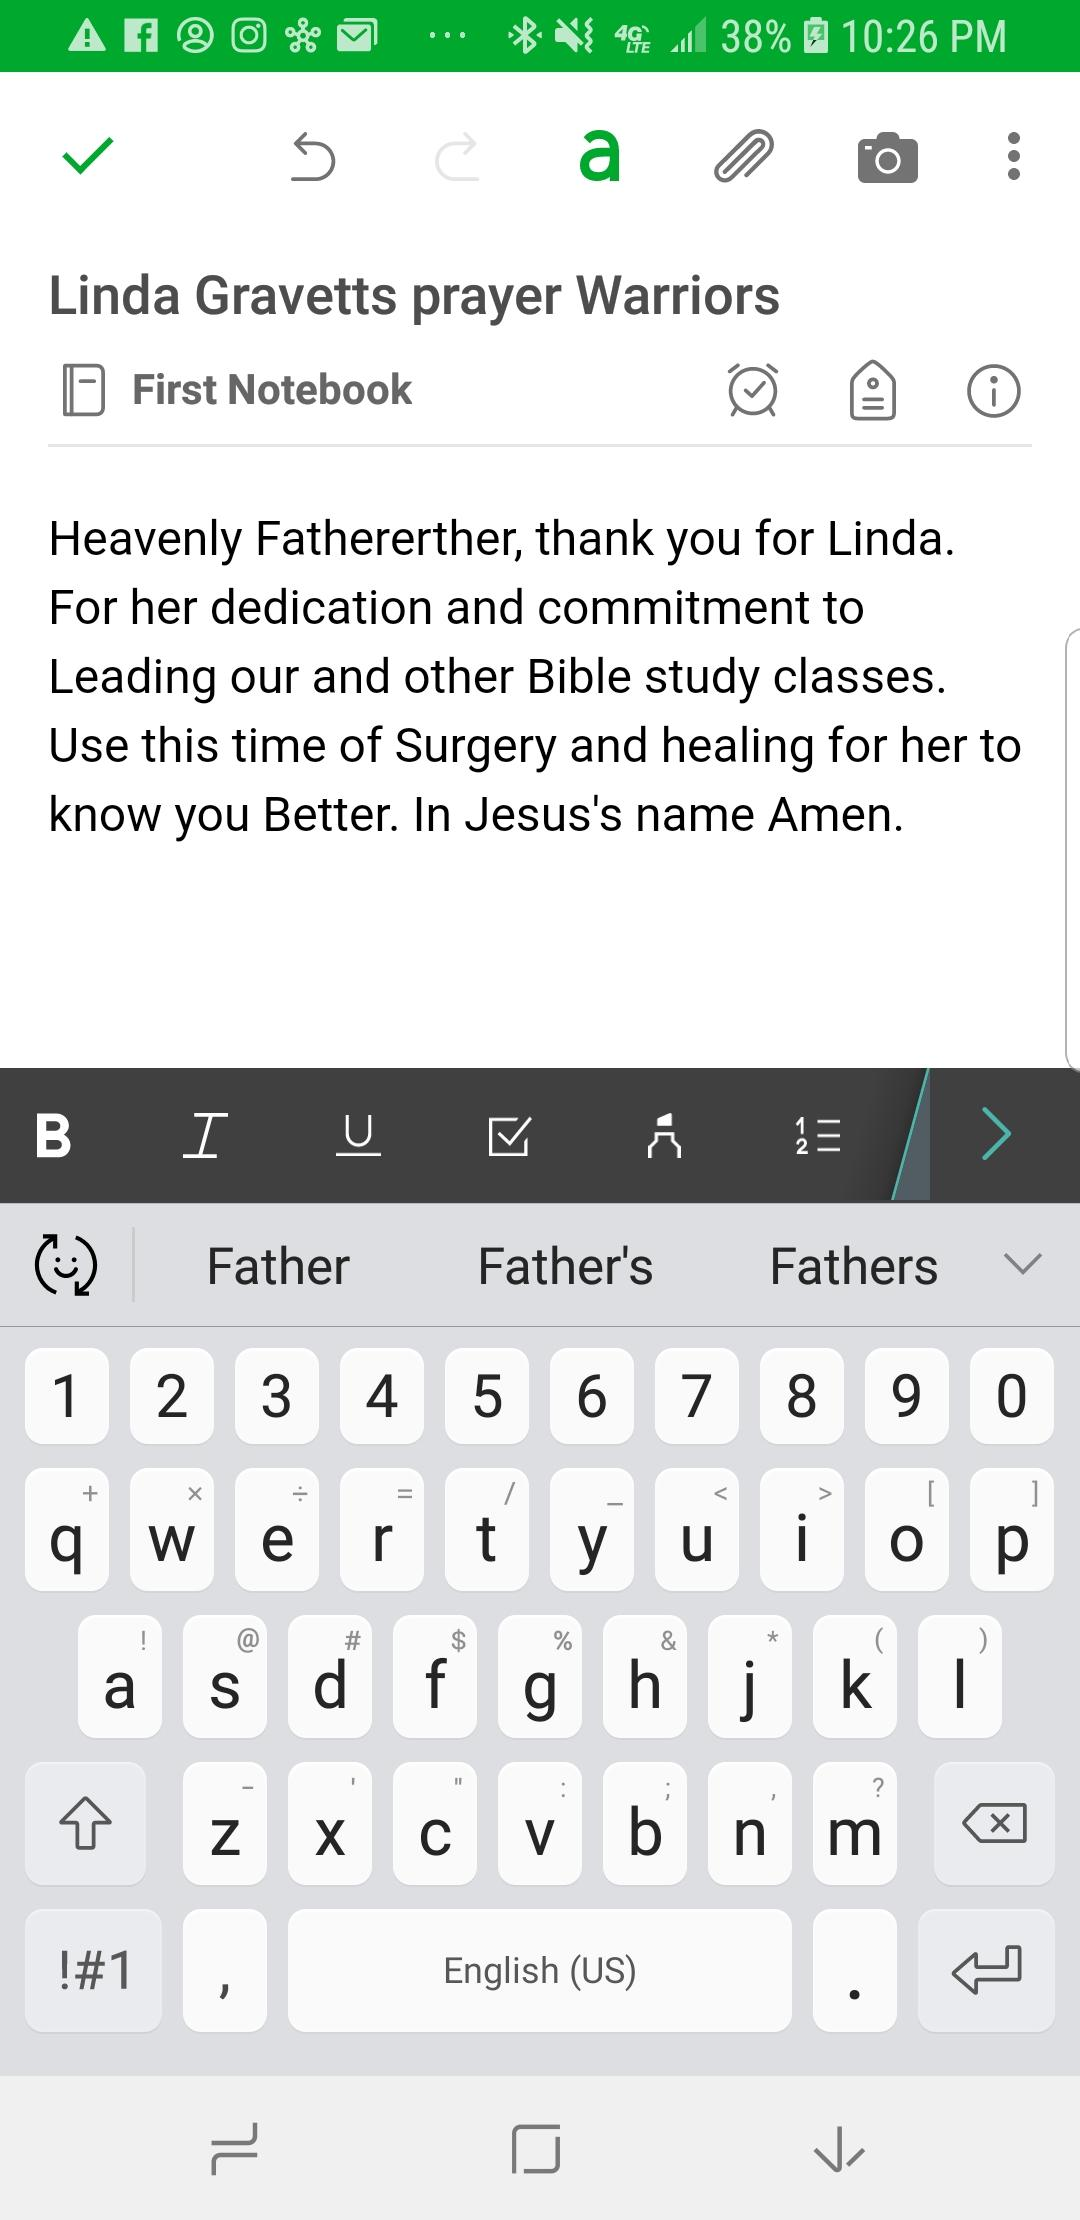 Evernote Android Typing Completely Glitchy?? - Evernote for